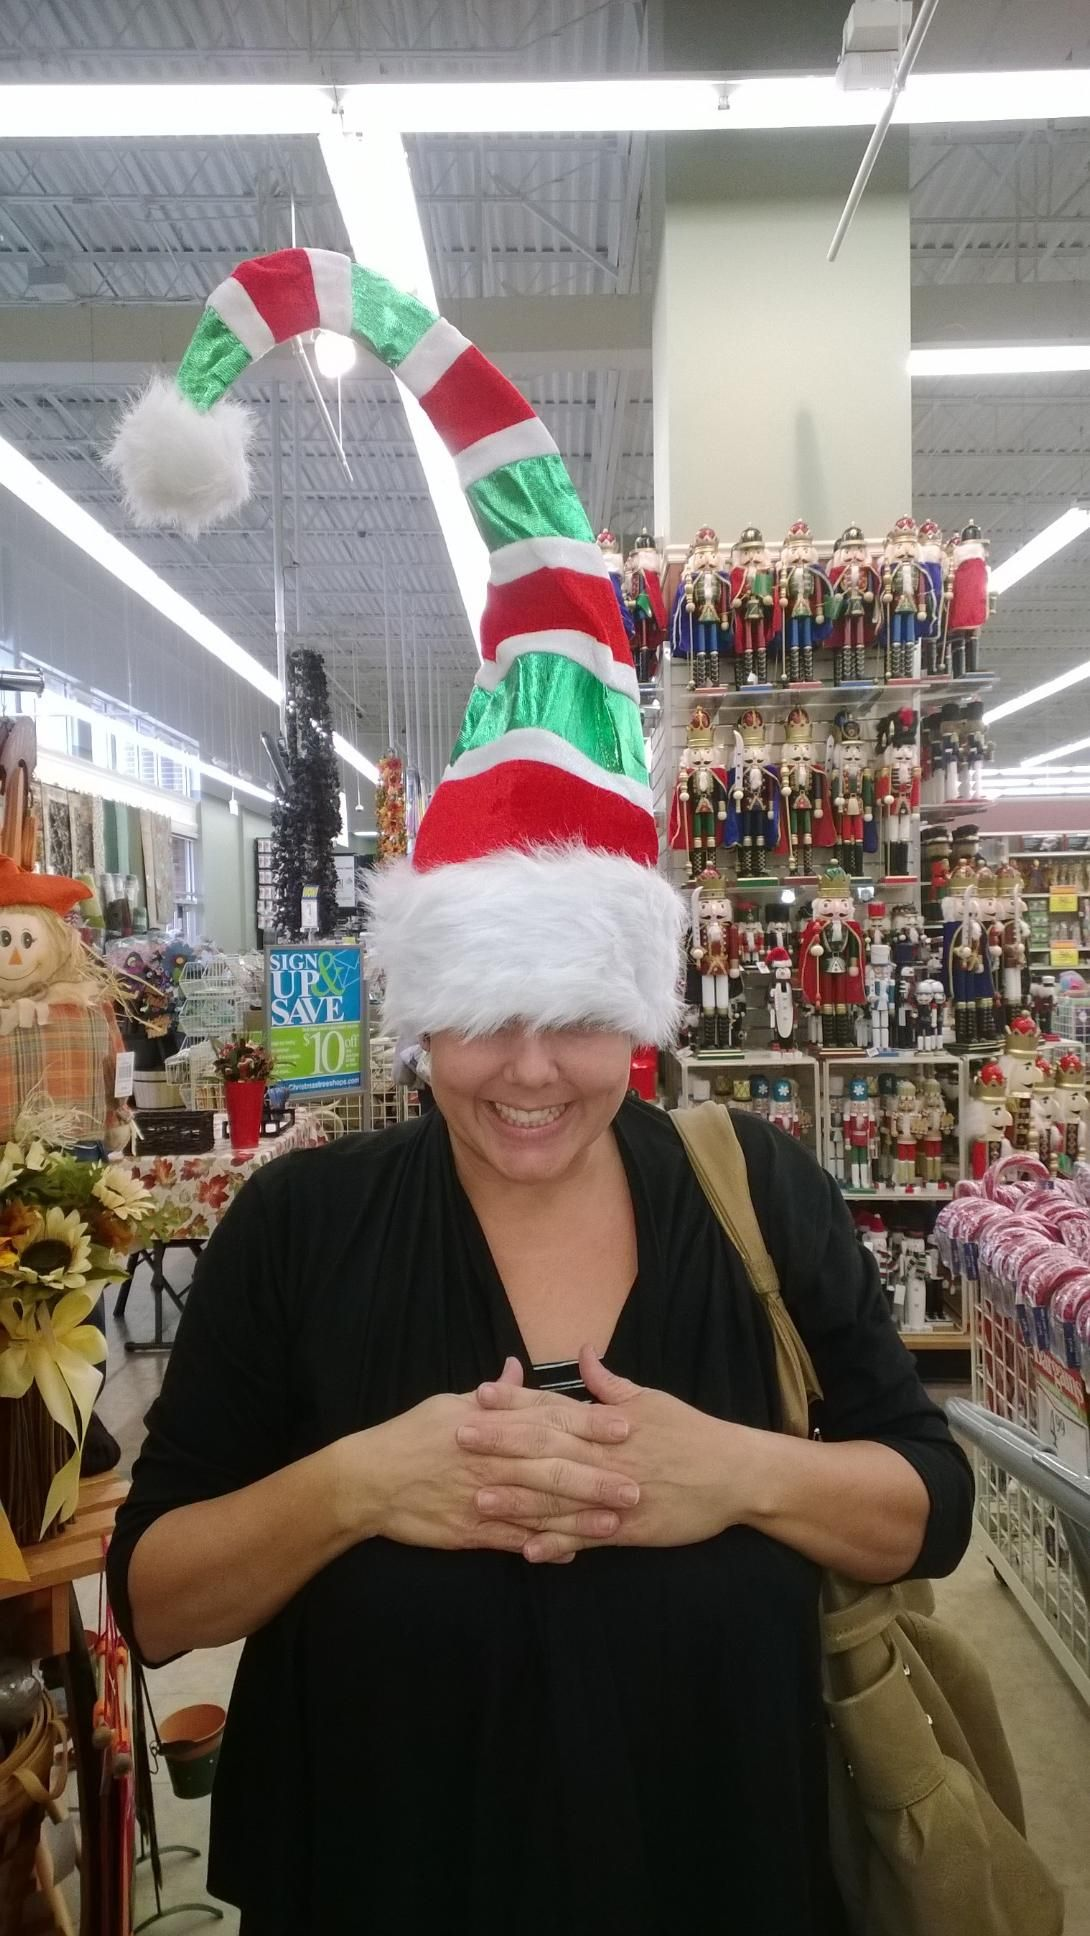 Costume Ideas · December · Natal · Whoville hat  sc 1 st  Pinterest & Whoville hat | Costume ideas | Pinterest | Grinch Whoville costumes ...